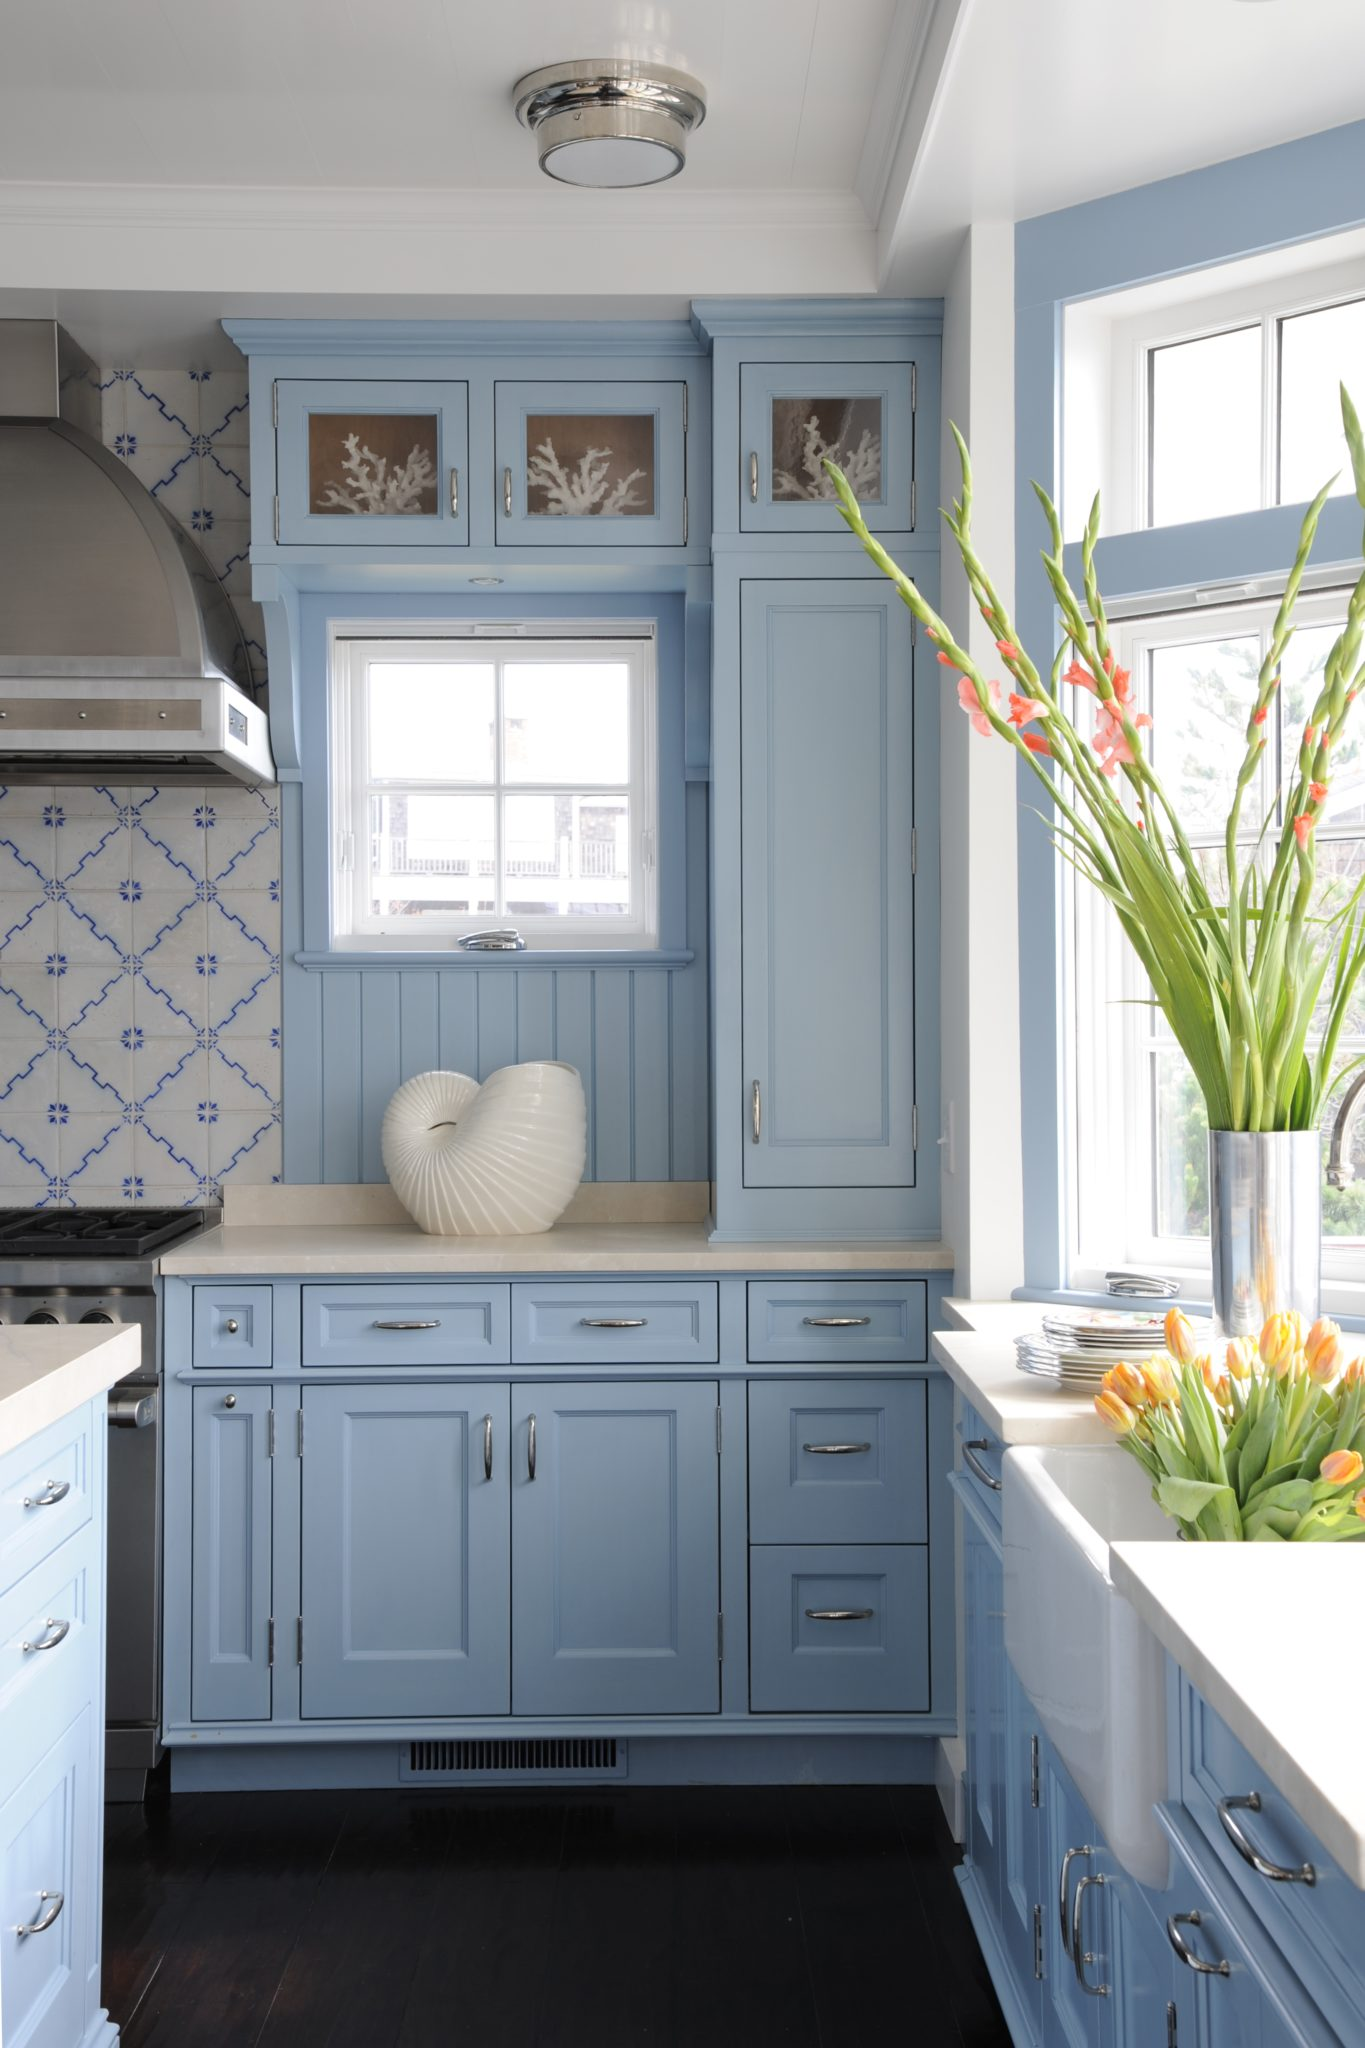 A Bright Blue Kitchen by Allison Caccoma, Inc.